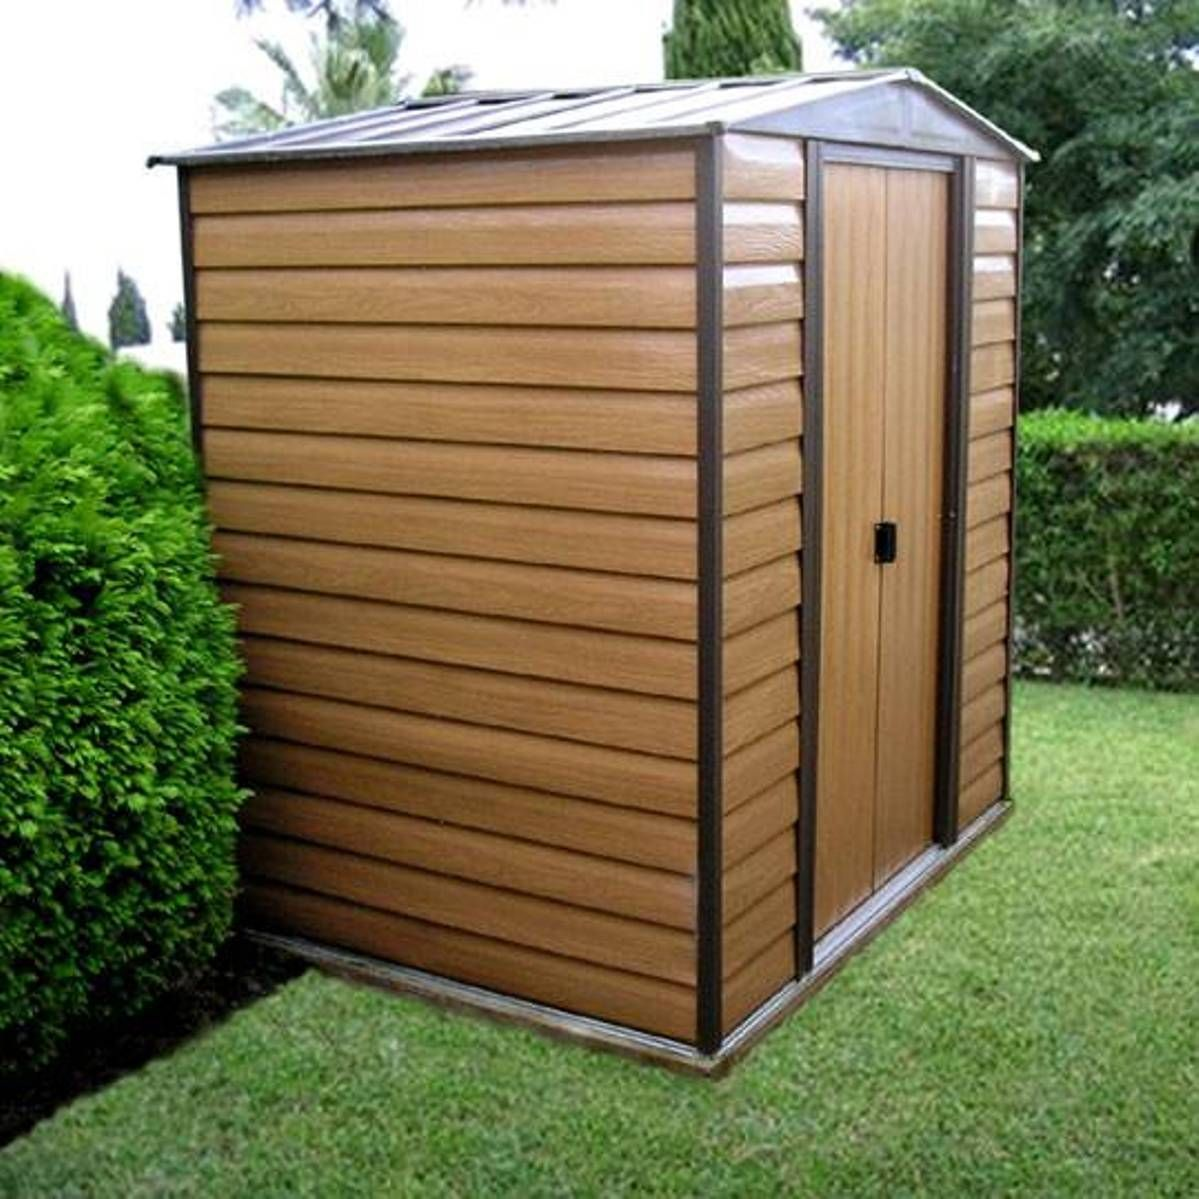 Brown Metal Garden Shed Metal Garden Shed Shed Diy Shed Plans Shed House Plans